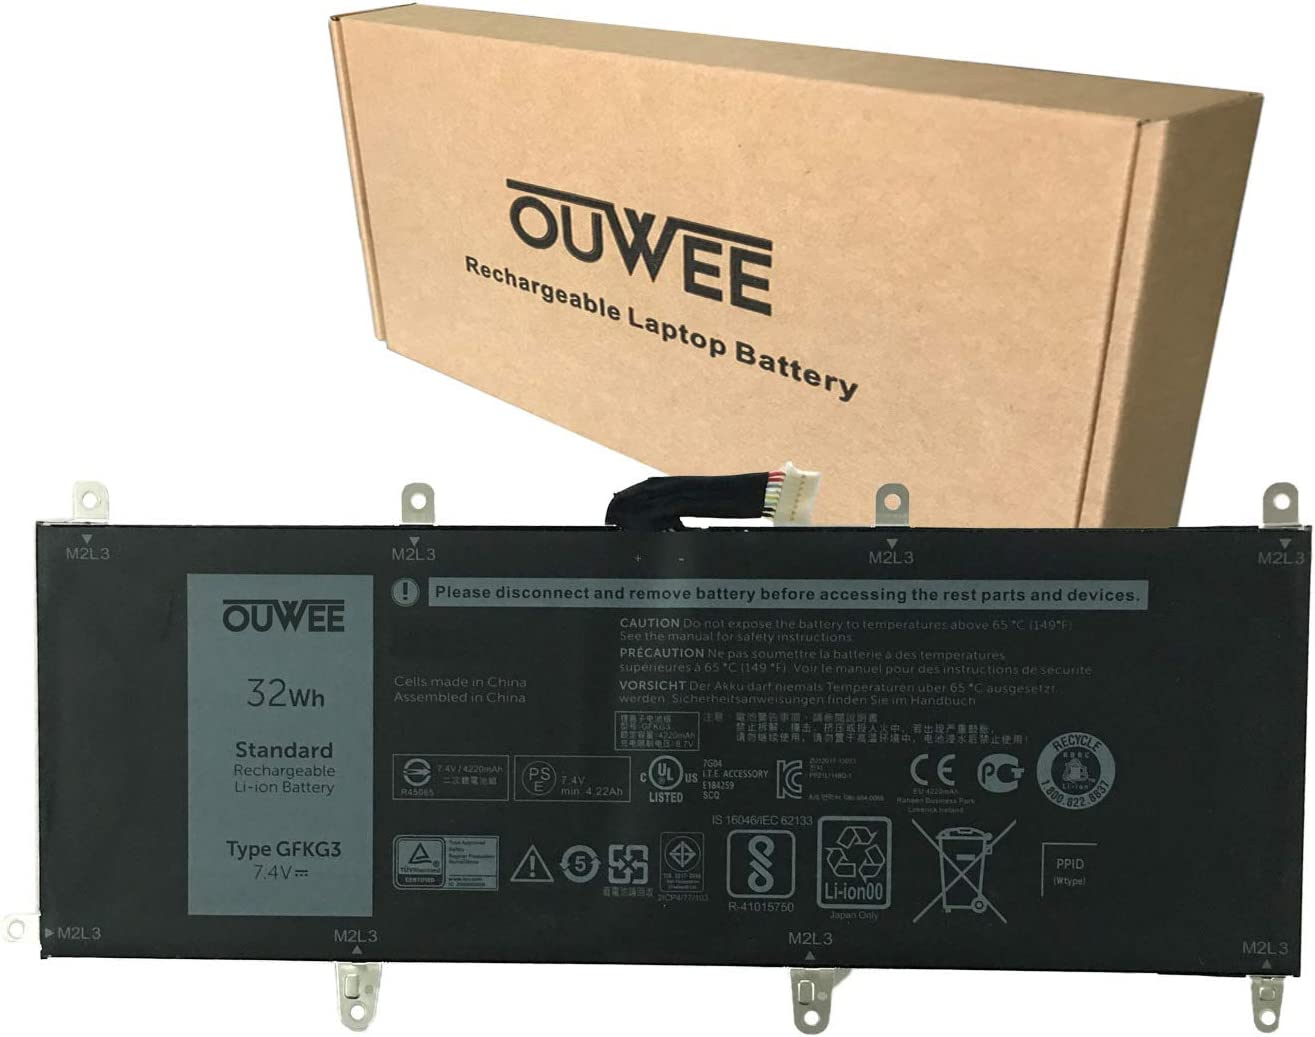 OUWEE GFKG3 Laptop Battery Compatible with DELL Venue 10 Pro 5056 Tablet Series Notebook WH96V VN25R 0VN25R 7.4V 32Wh 4220mAh